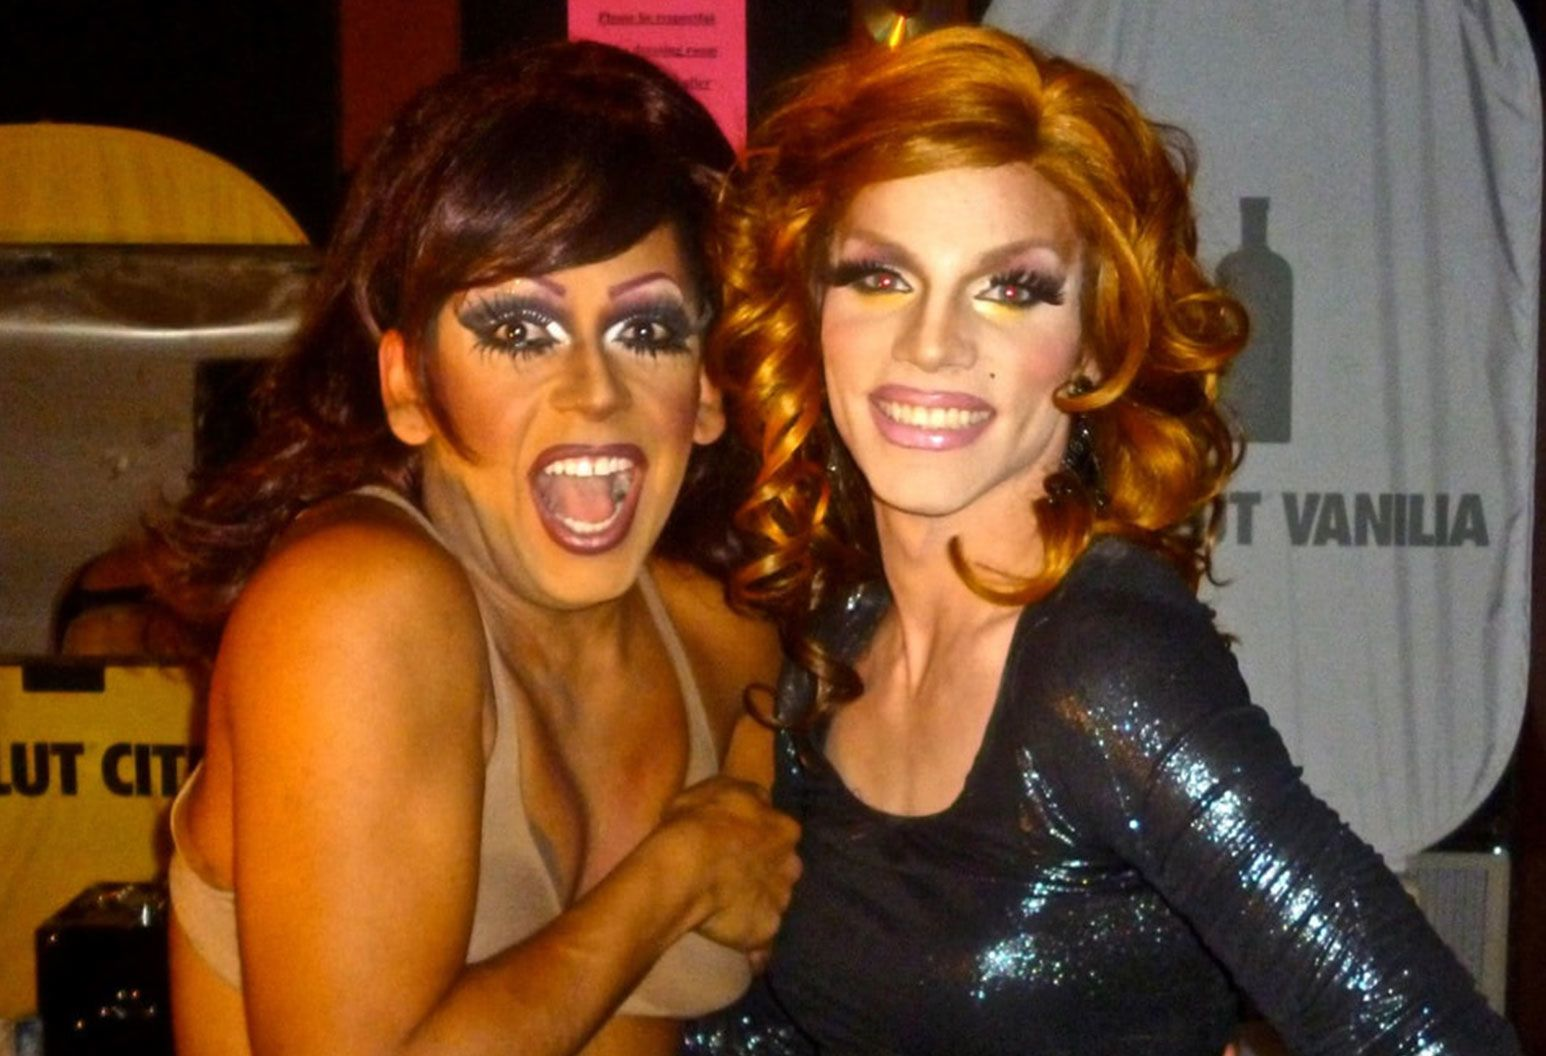 Two men in drag stand next to each other and smile for the camera. One is in a bra with a brunette wig, the other is in a black dress with a red wig.